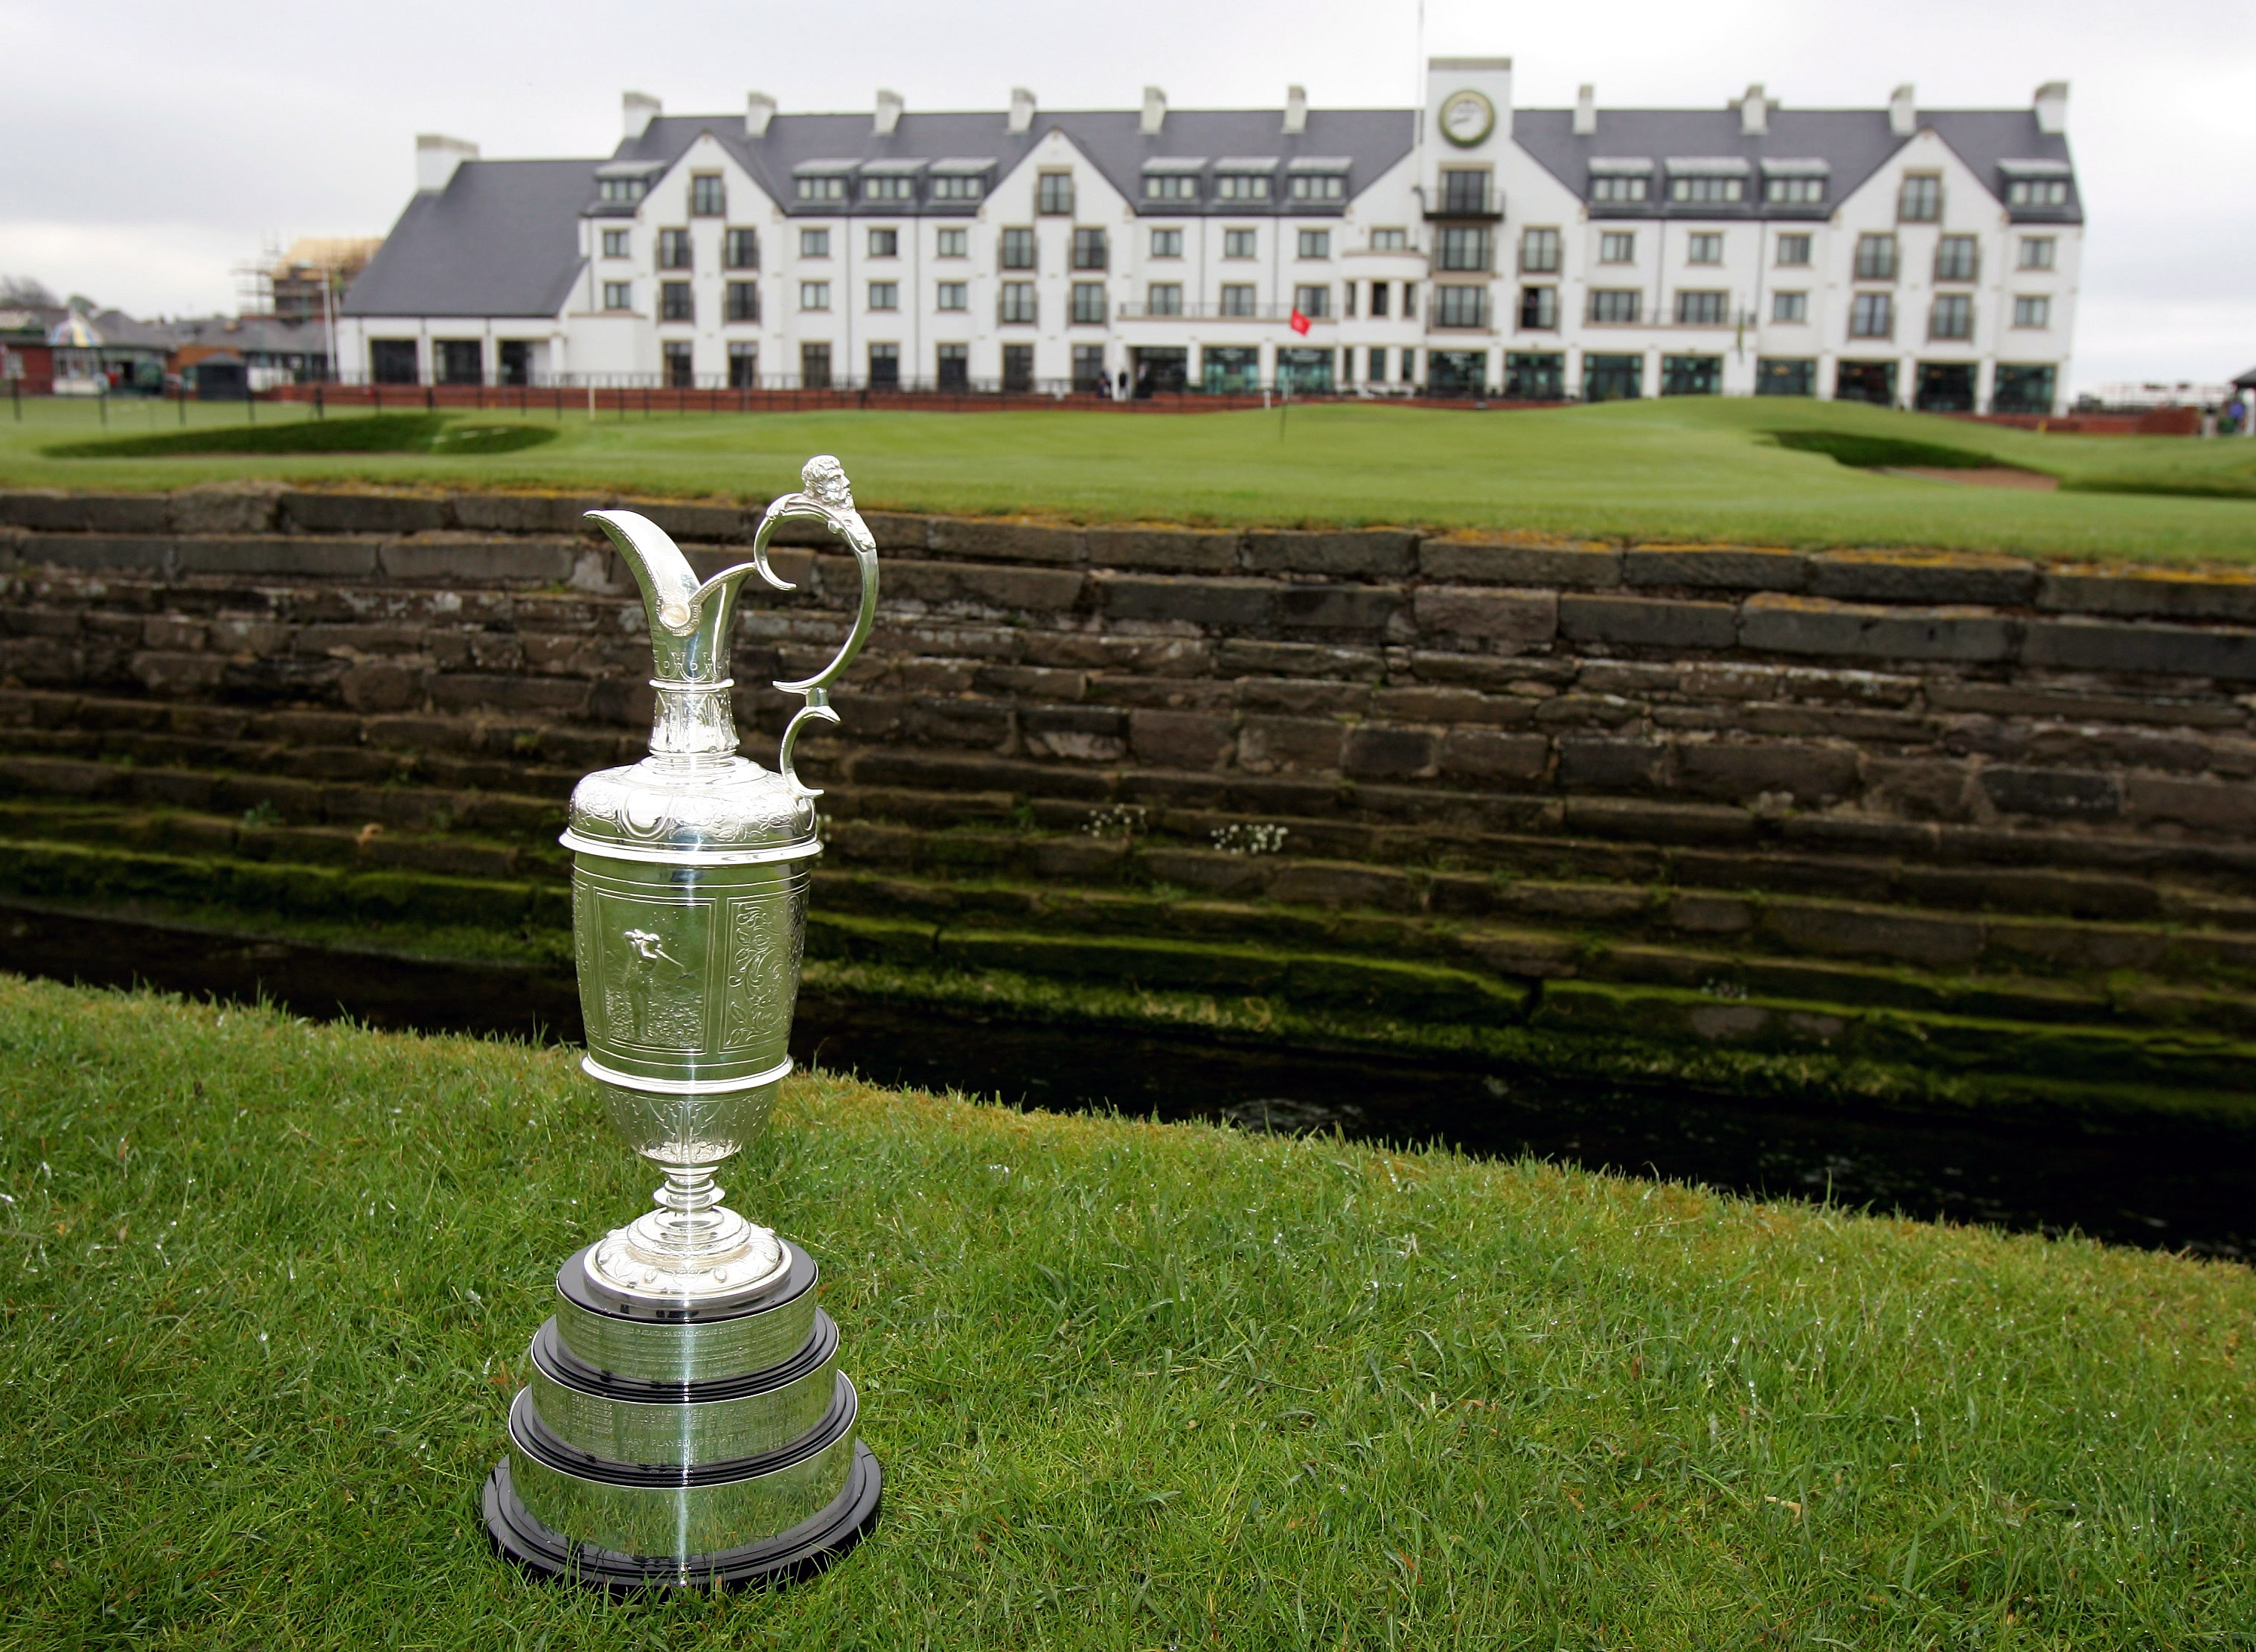 CARNOUSTIE, UNITED KINGDOM - MAY 01: A close-up of the claret jug trophy in front of the clubhouse prior to The Open Championship press conference held at Carnoustie Golf Club on May 1, 2007 in Carnoustie, Scotland. (Photo by Andrew Redington/Getty Images)